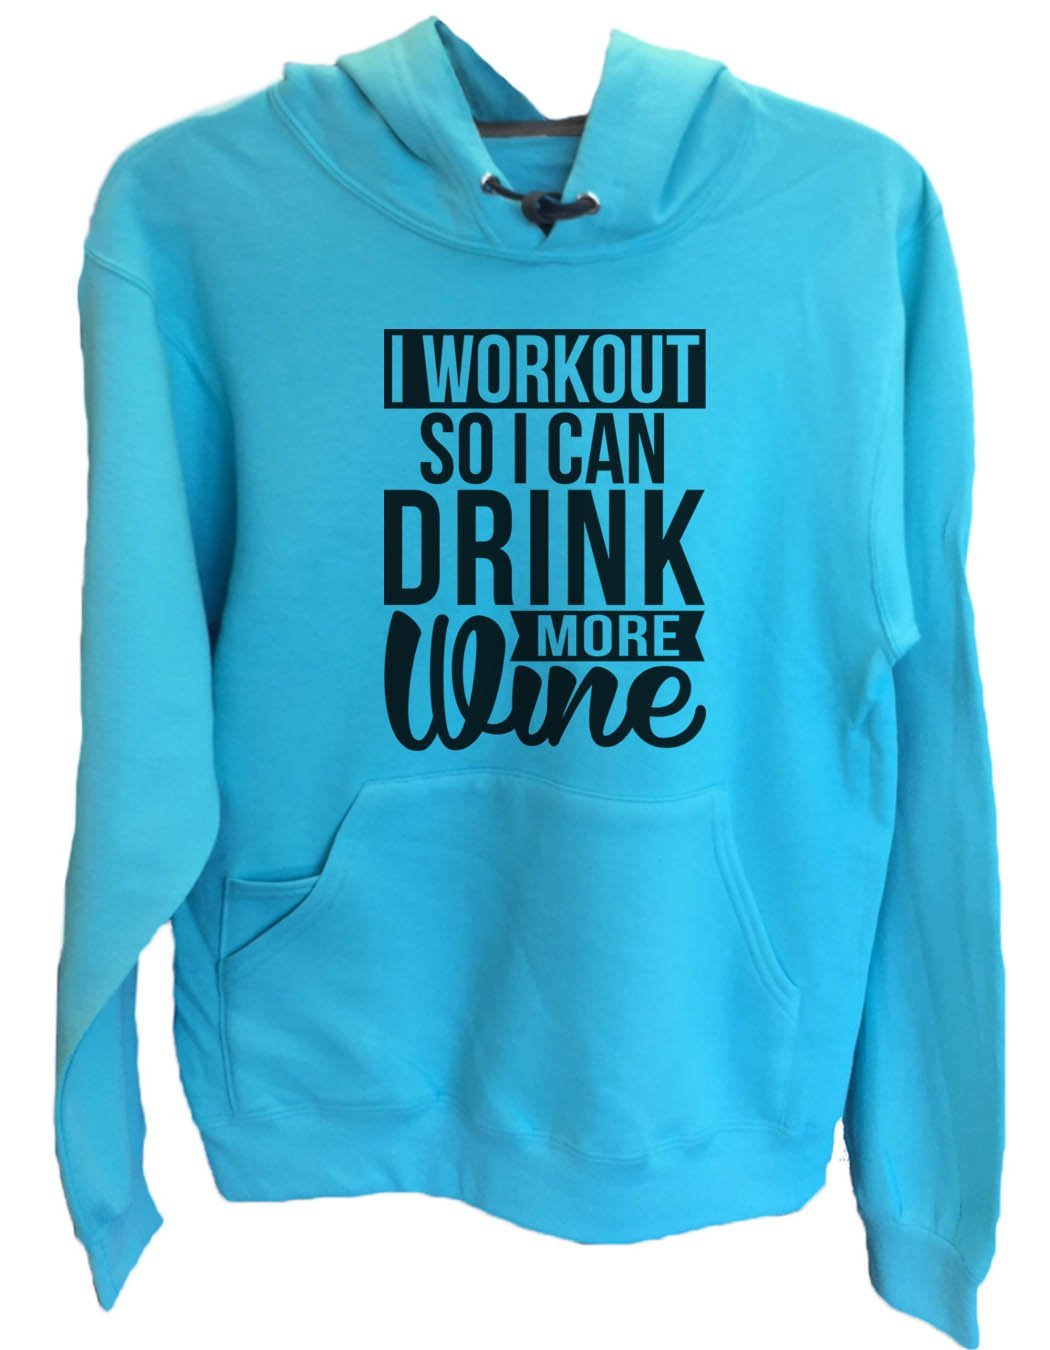 UNISEX HOODIE - I Workout So I Can Drink More Wine - FUNNY MENS AND WOMENS HOODED SWEATSHIRTS - 2133 Funny Shirt Small / Turquoise